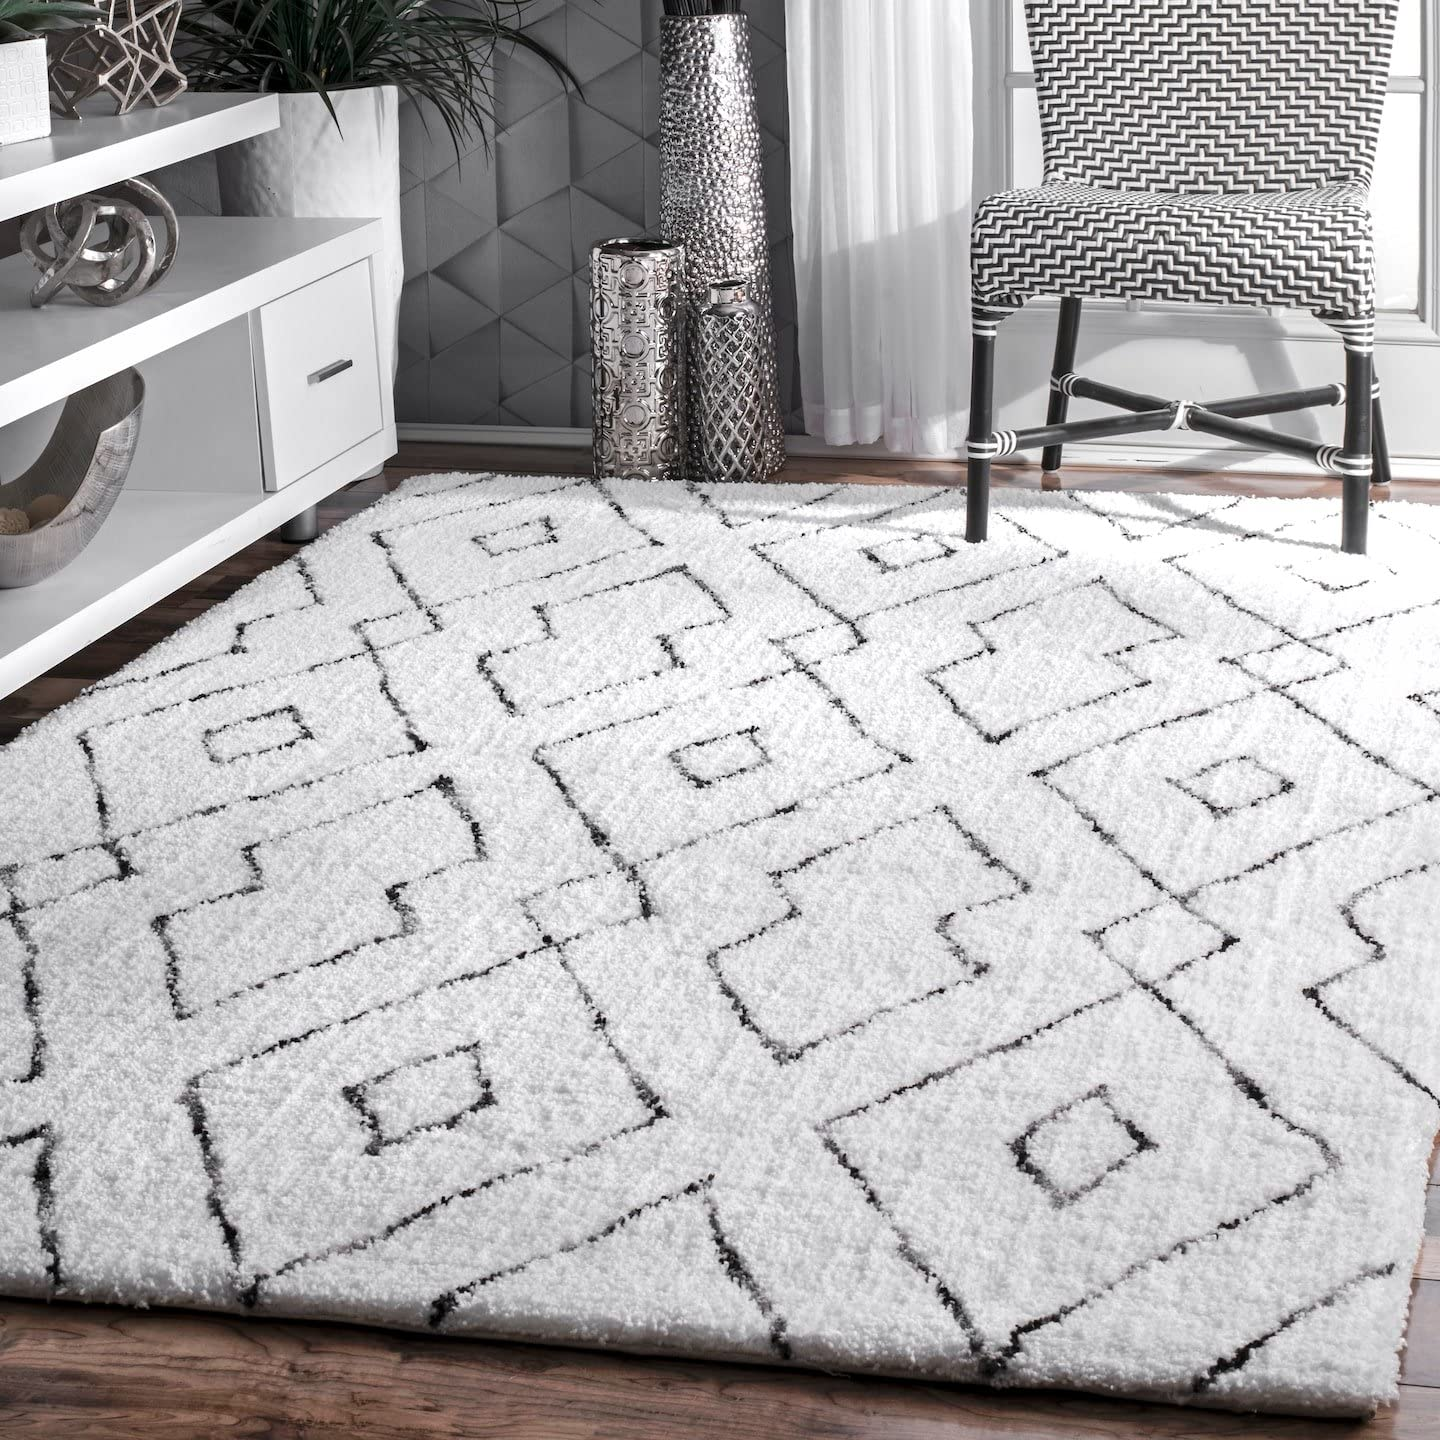 nuLOOM Lauren Lattice Shag Rug, 9 x 12 , White